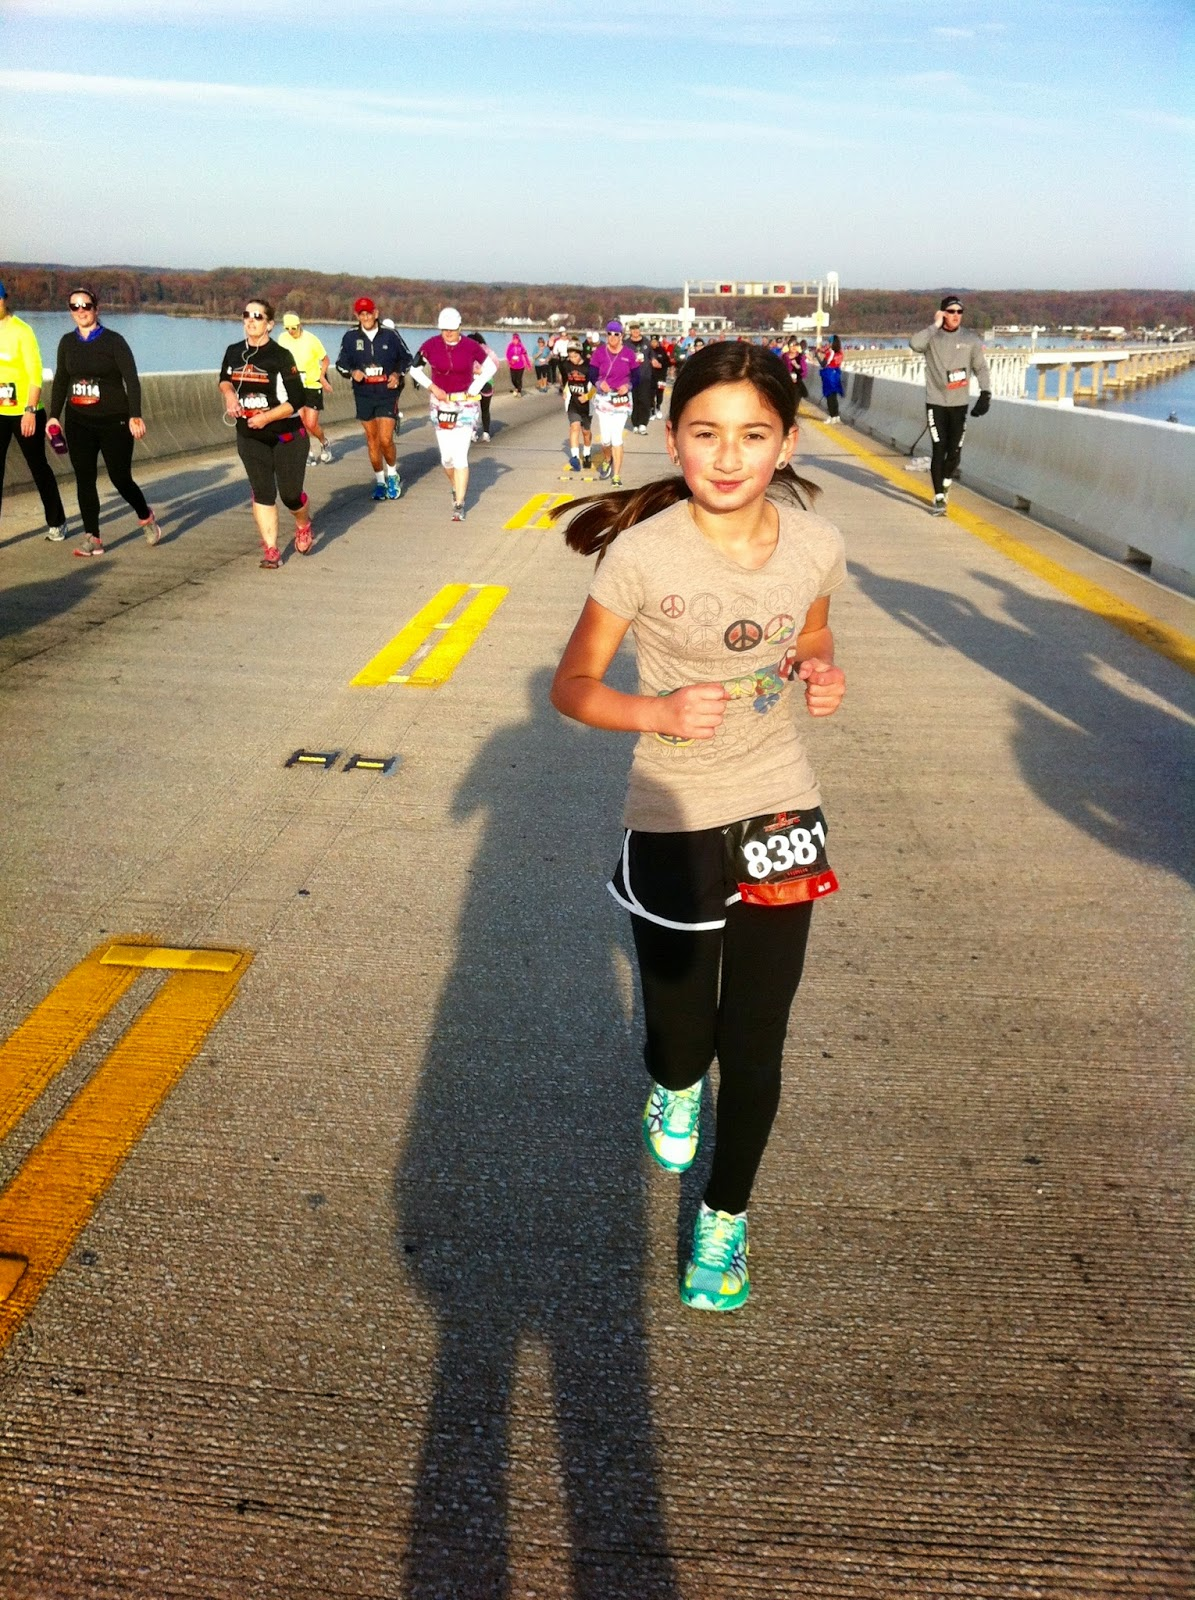 Lil O running - Bay Bridge 10K